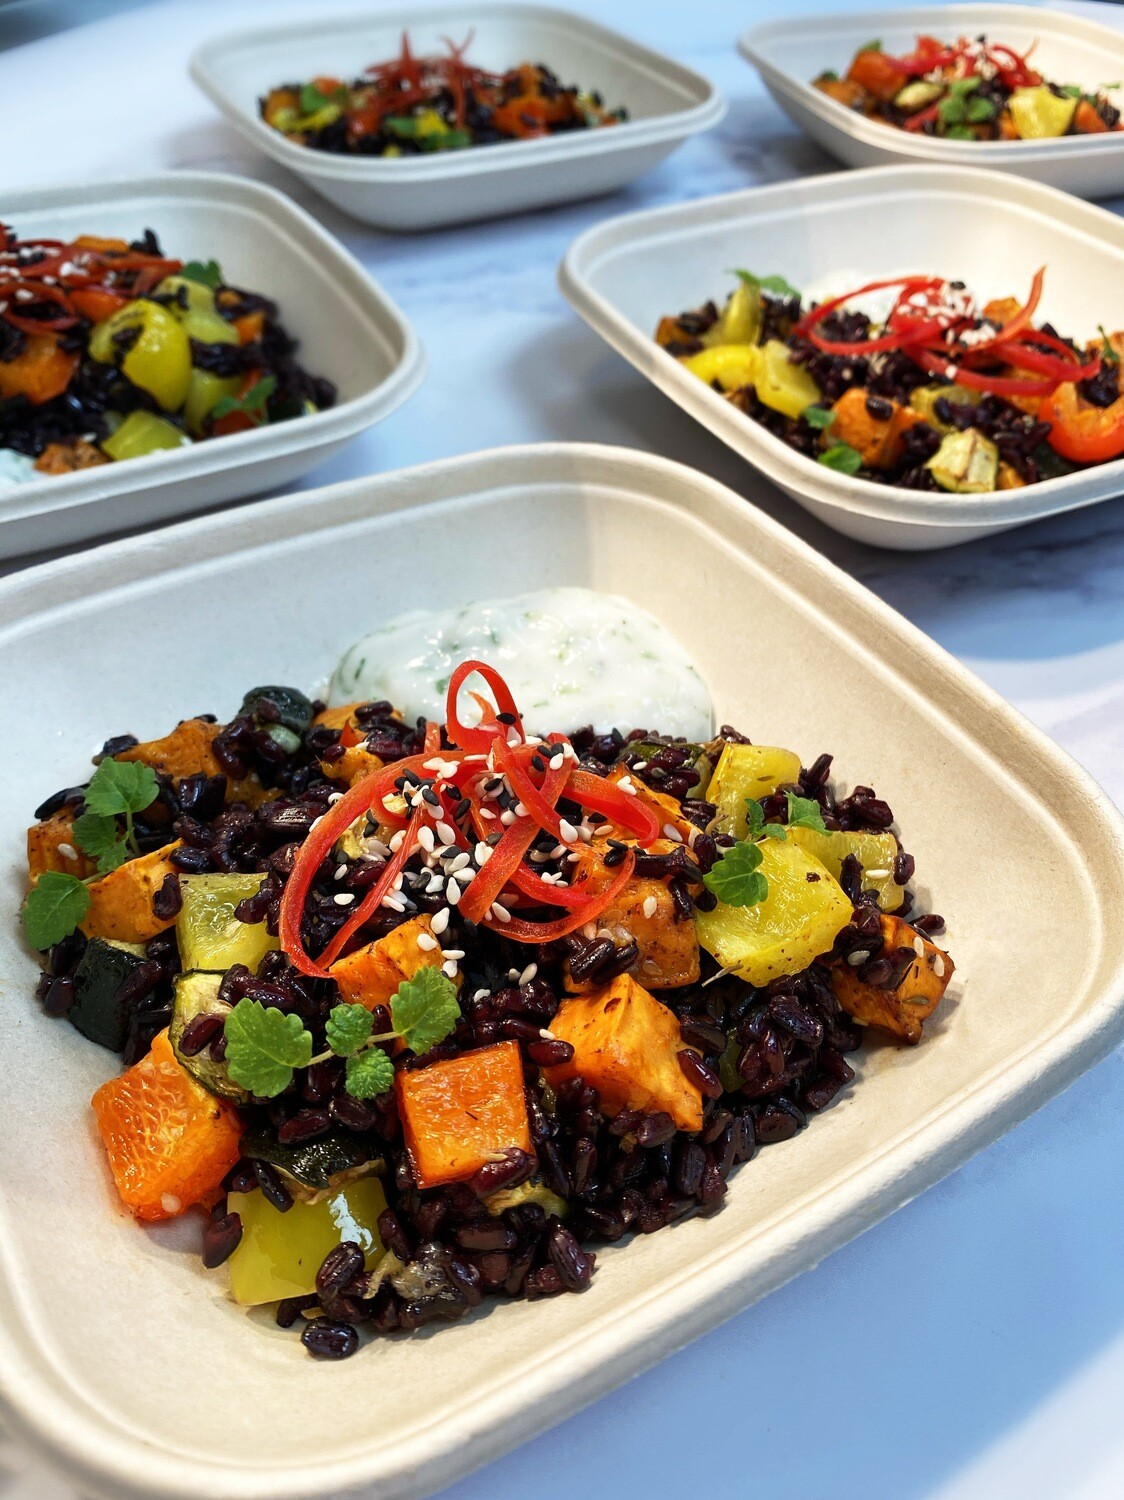 Roasted Mediterranean Vegetable & Black Rice Salad served with Tzatziki (Express)